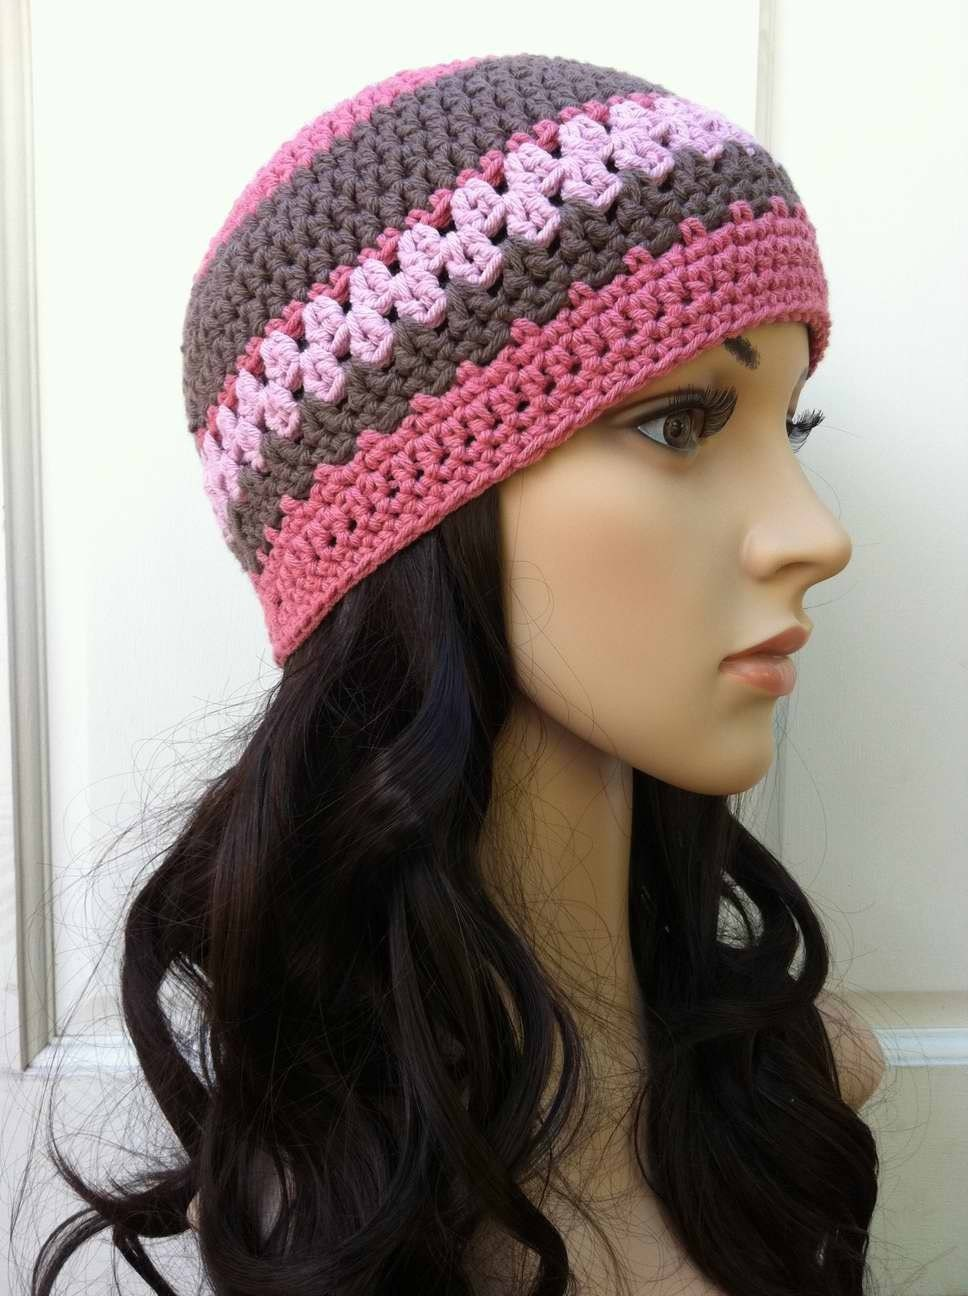 Crochet Hat Free Pattern Woman : Ladies Crochet Hat Pattern Womens Beanie Pattern No.208